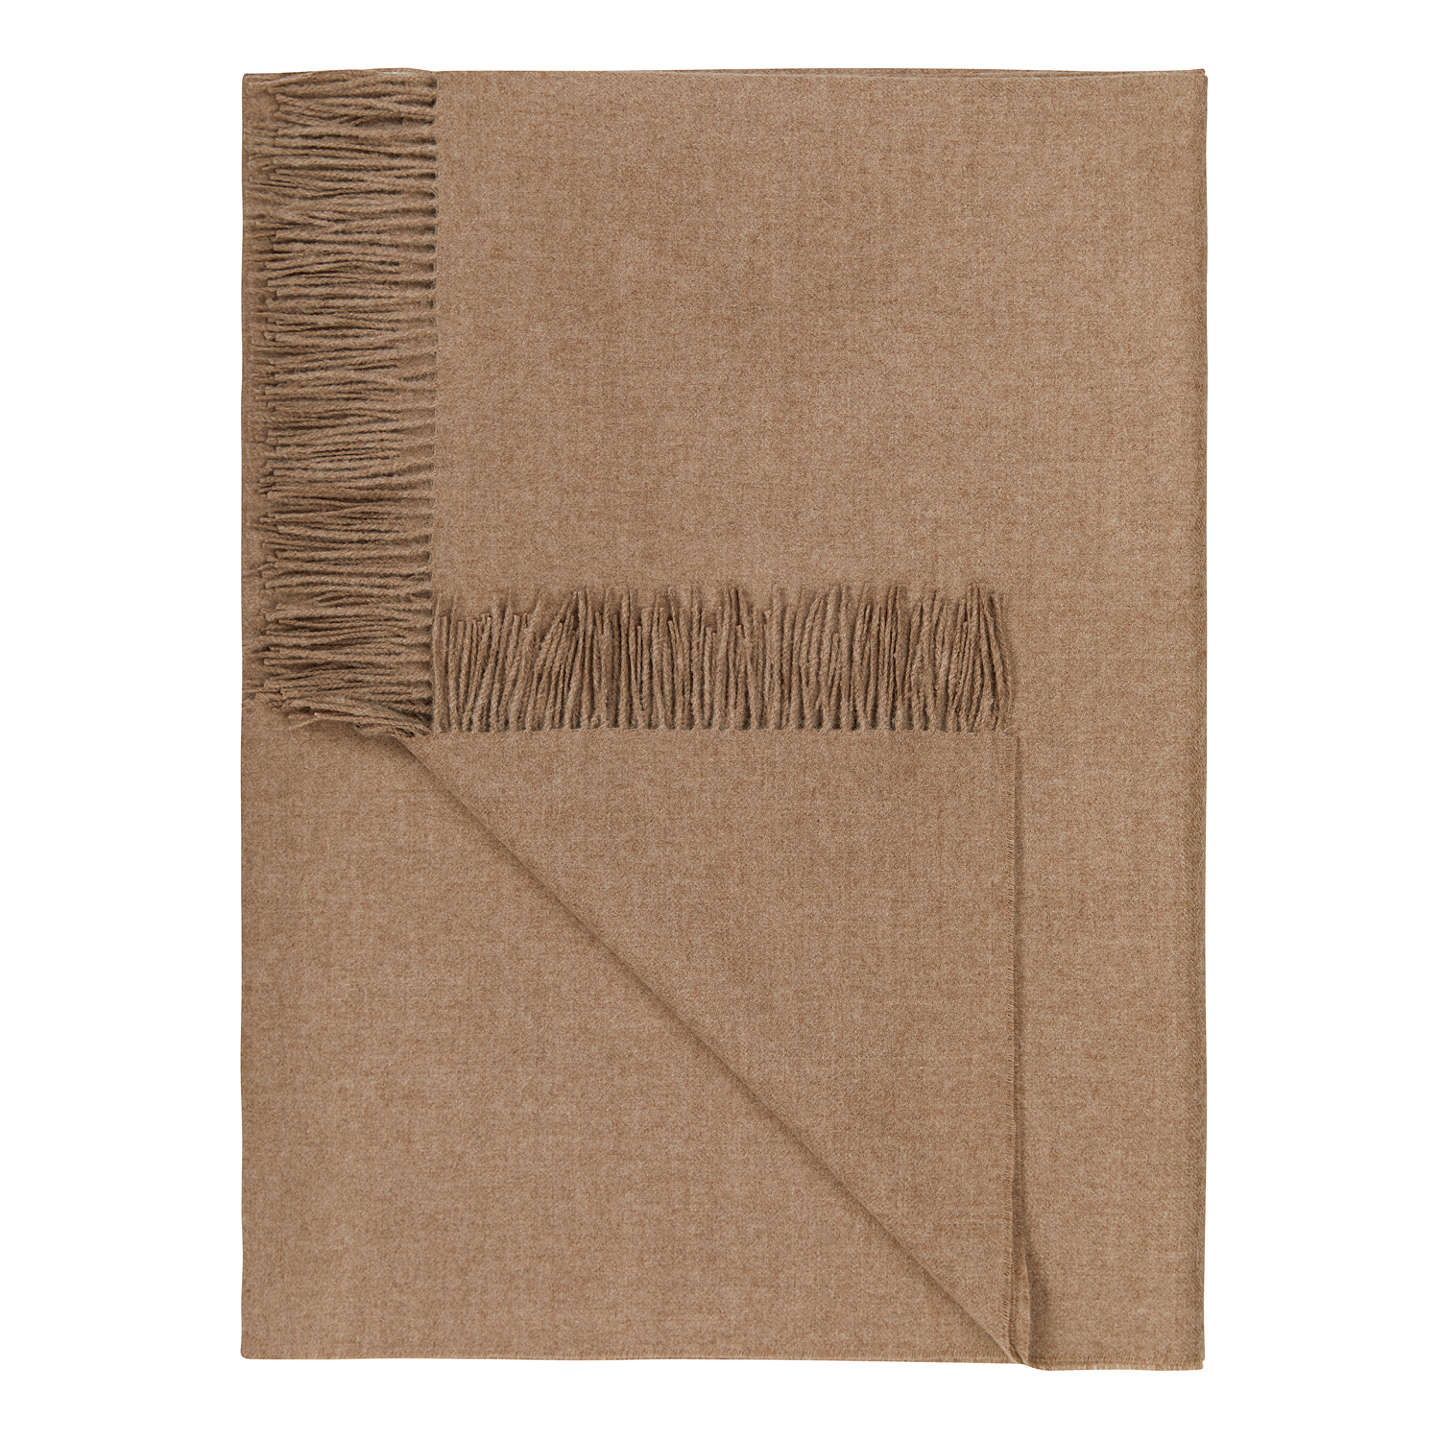 BuyCroft Collection Alpaca Throw, Tan Online at johnlewis.com